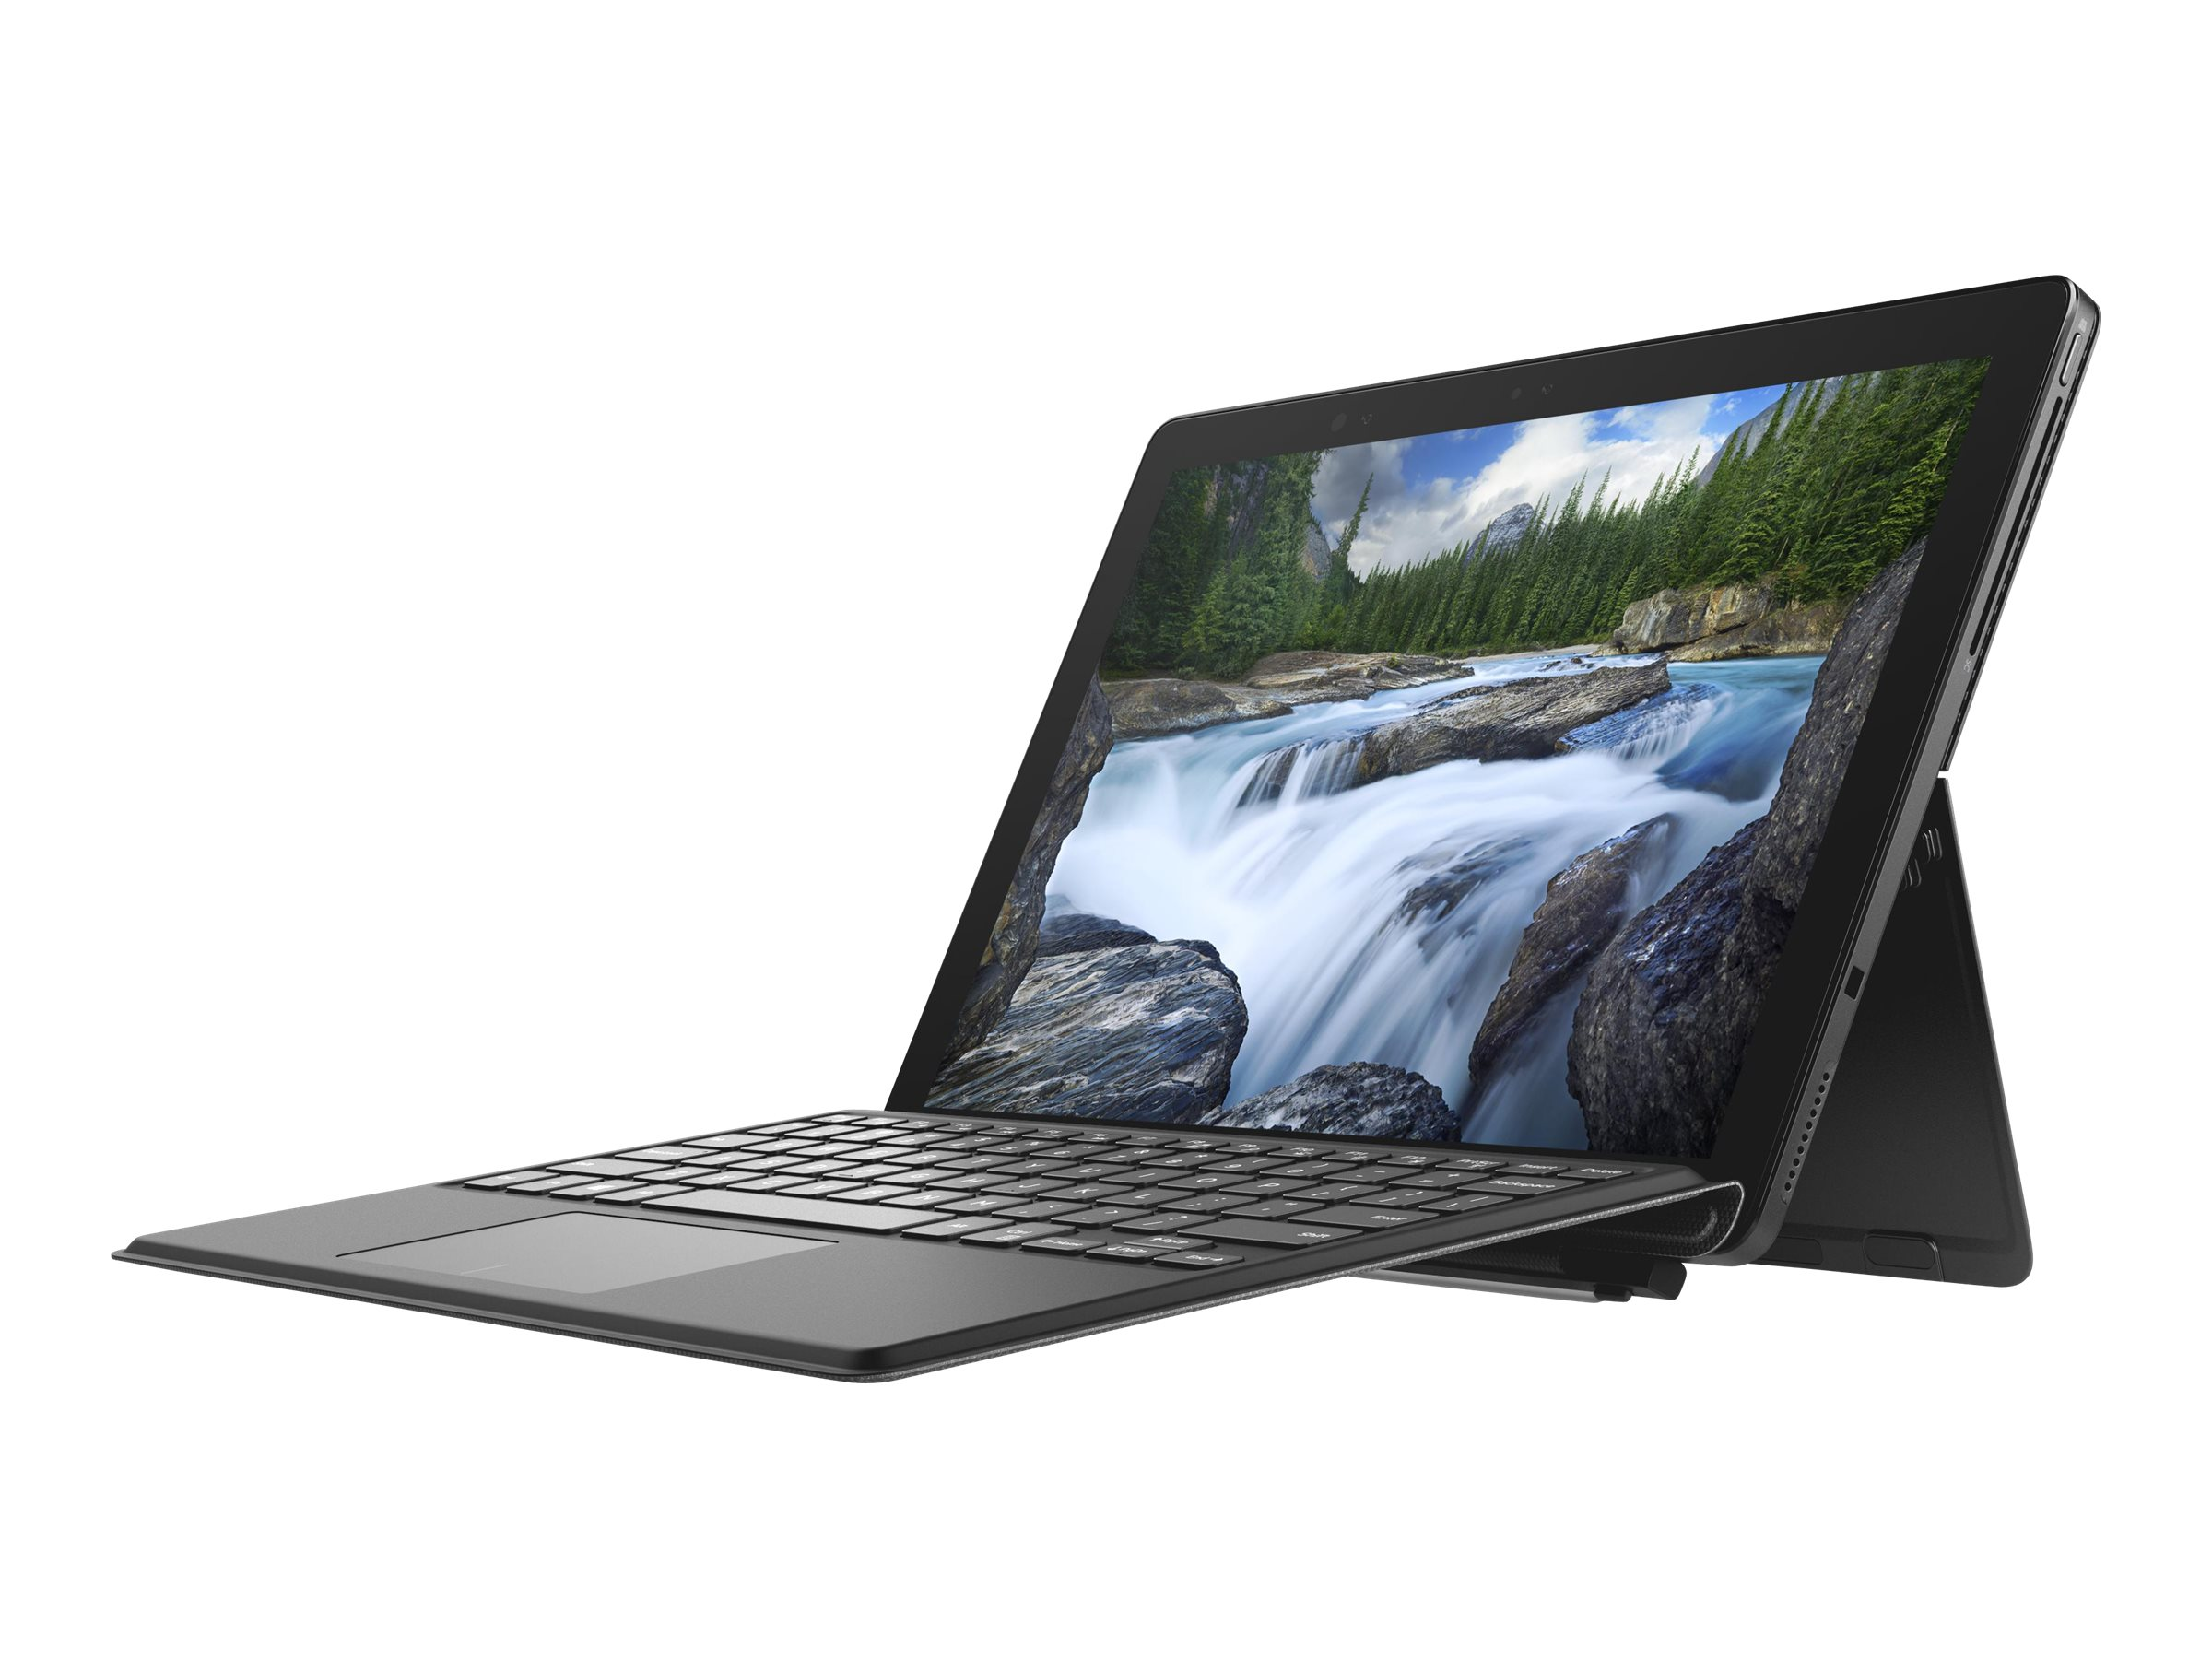 """Dell Latitude 5290 2-in-1 - 12.3"""" - Core i5 8350U - 8 GB RAM - 256 GB SSD - with 1-year ProSupport"""